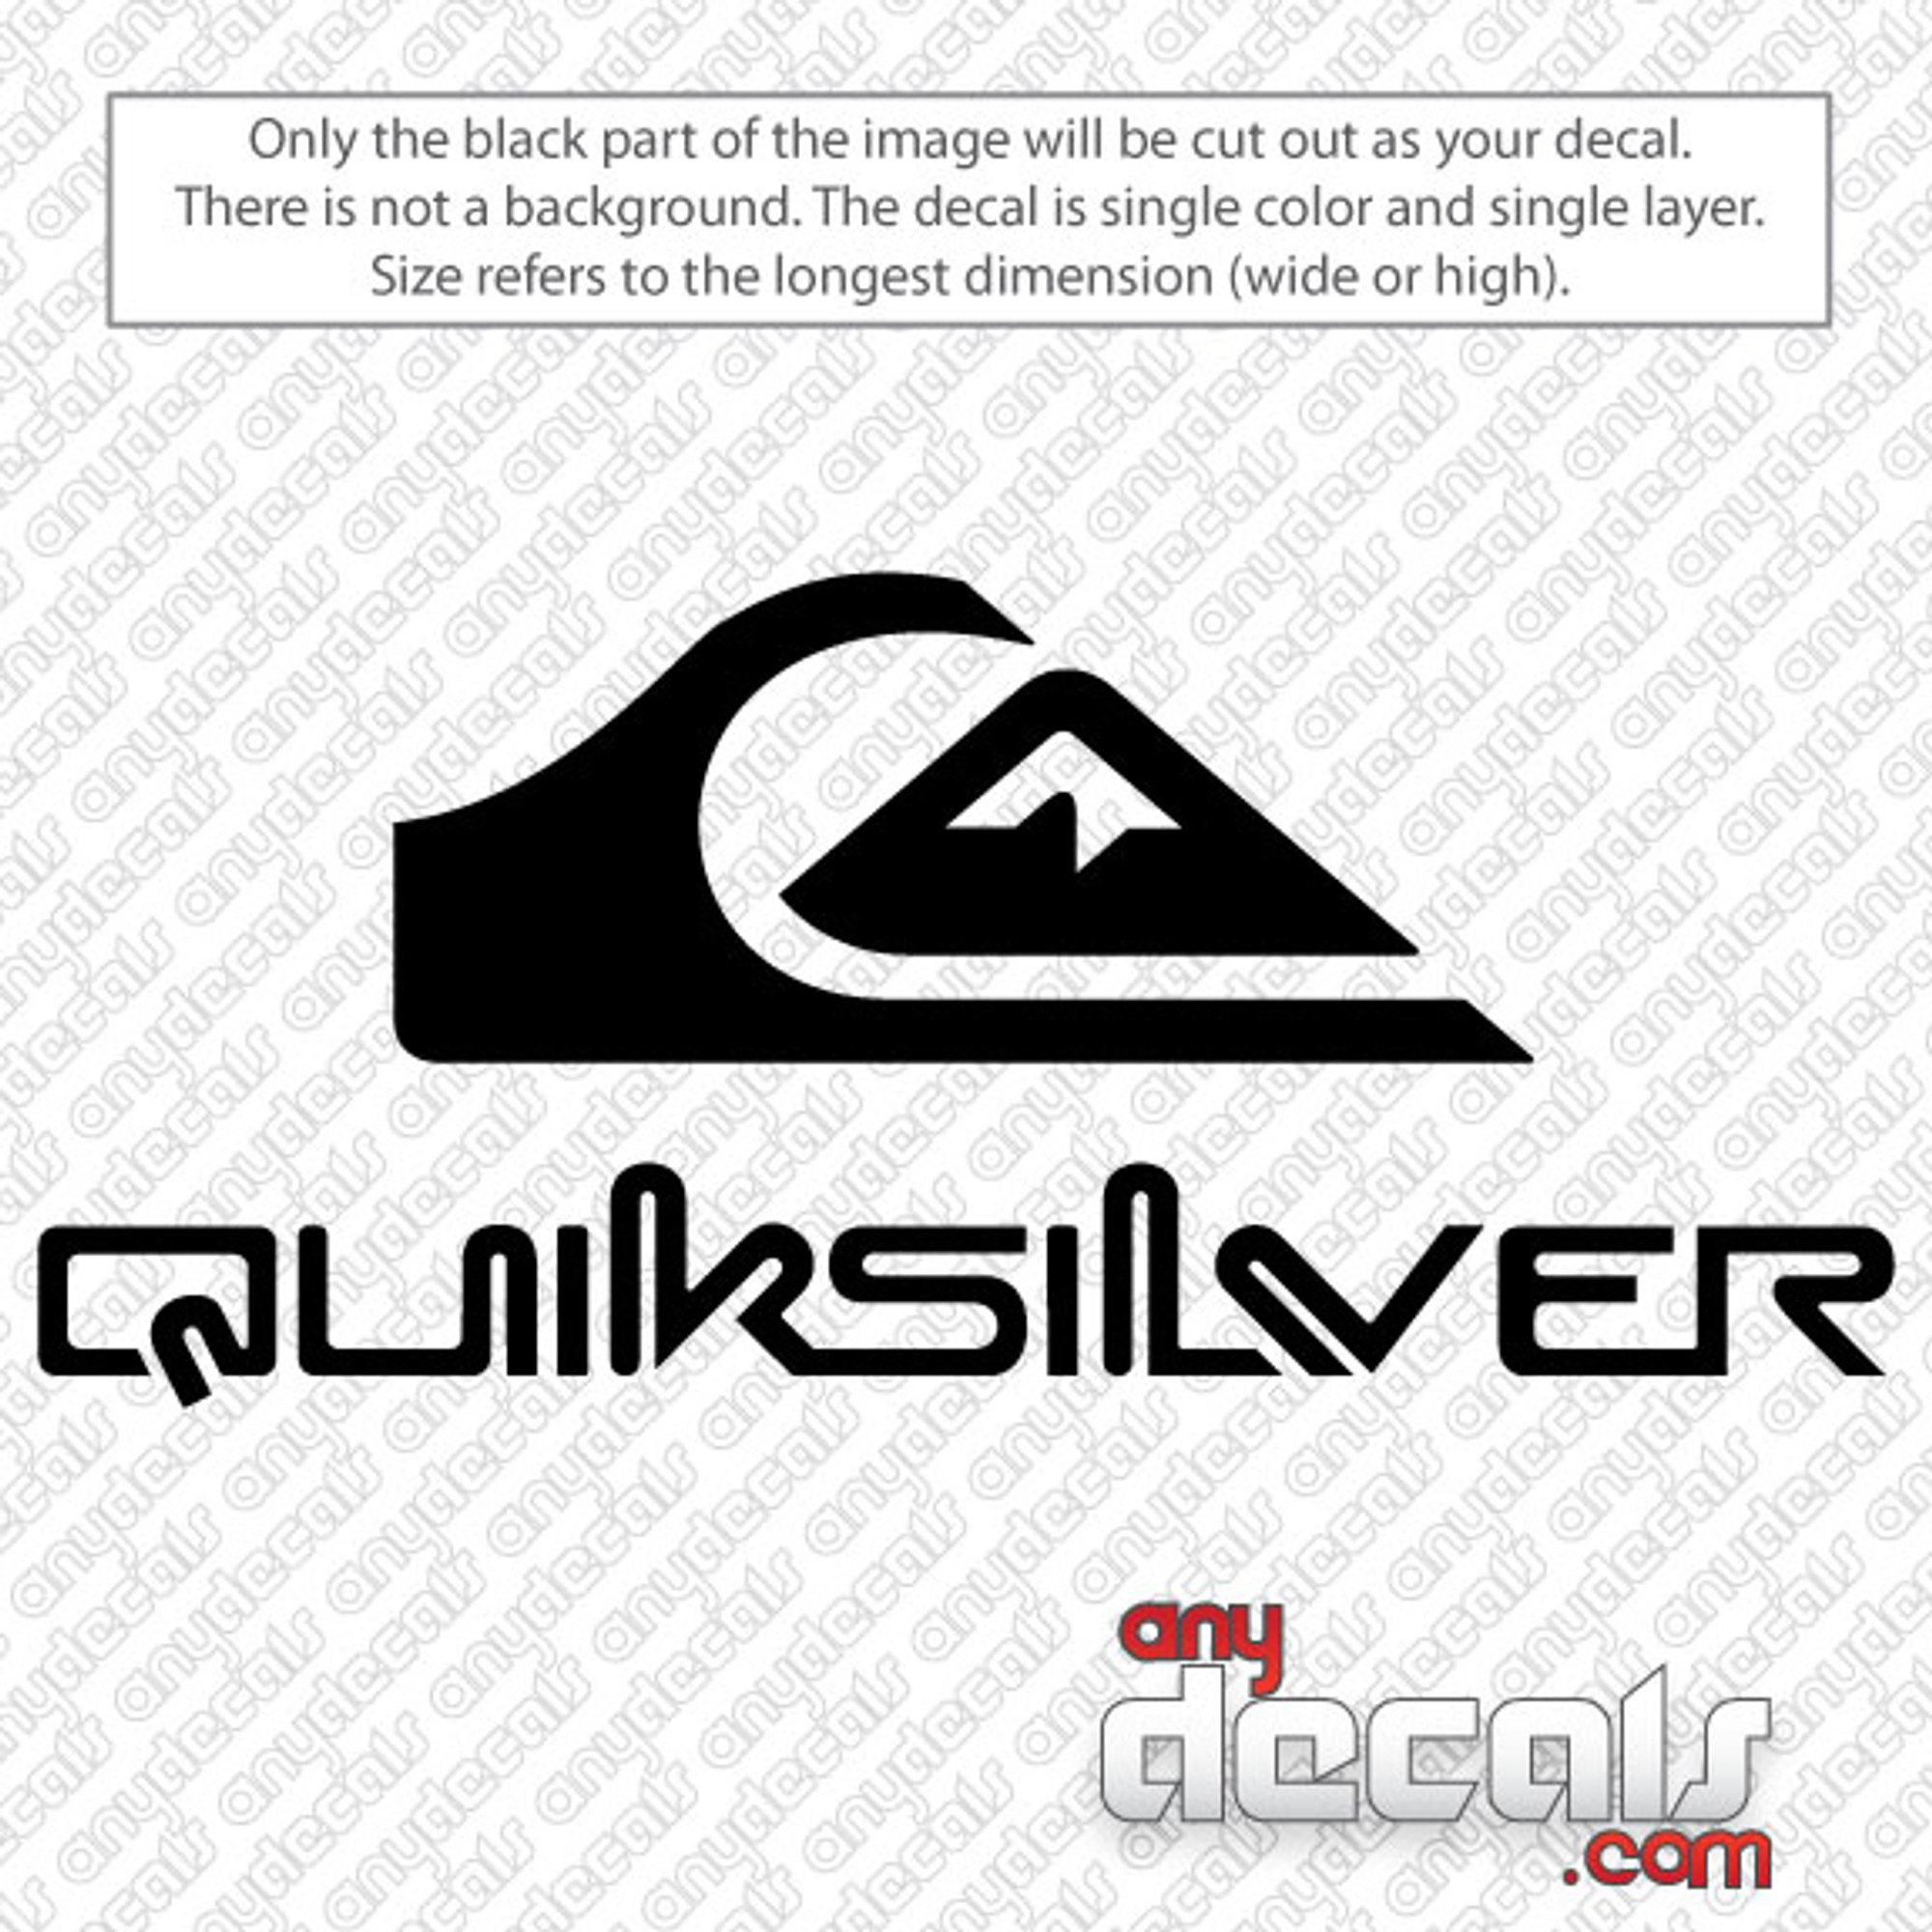 Car Decals Car Stickers Quiksilver Surf Car Decal